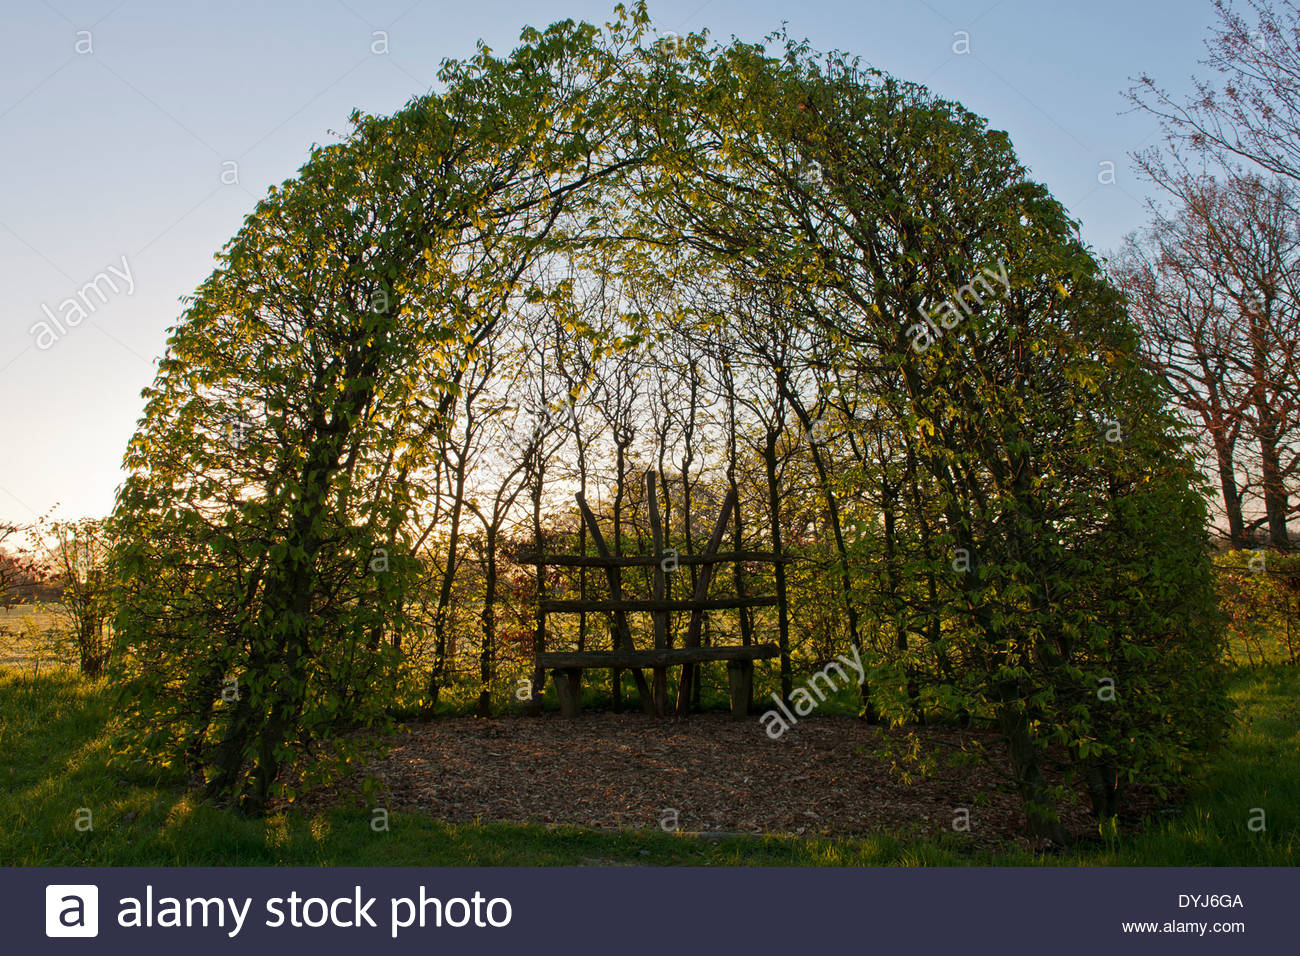 Sculptural Covered Garden Seat Beanch Trained Pruned Like Trees Tilia  Circular Dome Sun Sunny Blue Sky Spring April Merriments